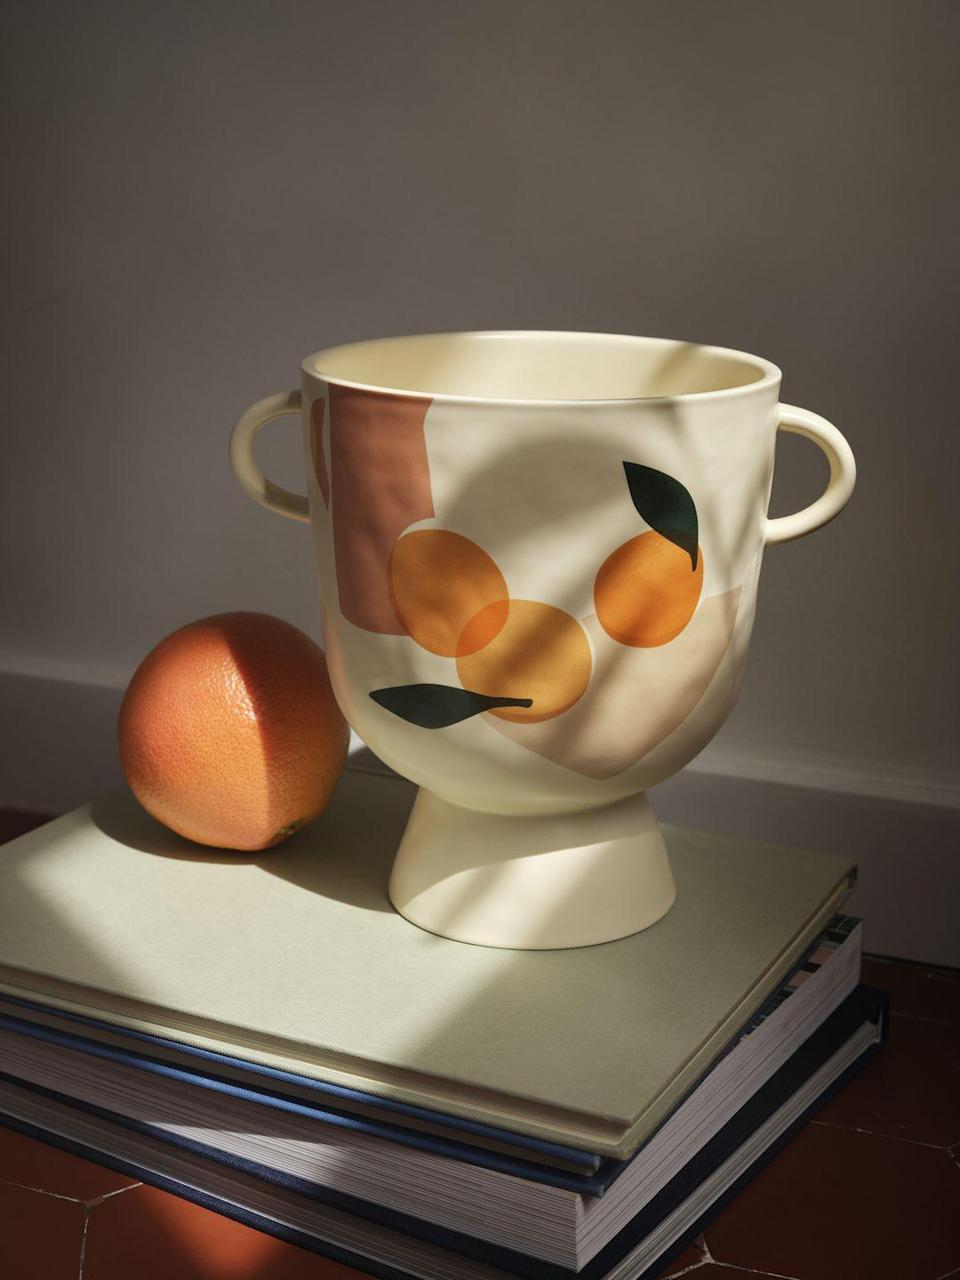 """<p>This beautiful stoneware plant pot created by duo Sacrée Frangine features sun-ripened oranges on a cream background. </p><p>'Our pieces in the collection are gentle reminders to take time. Take time to dream, to contemplate a beautiful landscape, to smile, to spend time with people you love or miss,' say Célia Amroune and Aline Kpade from Sacrée Frangine.</p><p><a class=""""link rapid-noclick-resp"""" href=""""https://www2.hm.com/en_gb/productpage.1009576001.html"""" rel=""""nofollow noopener"""" target=""""_blank"""" data-ylk=""""slk:BUY NOW"""">BUY NOW</a> </p>"""